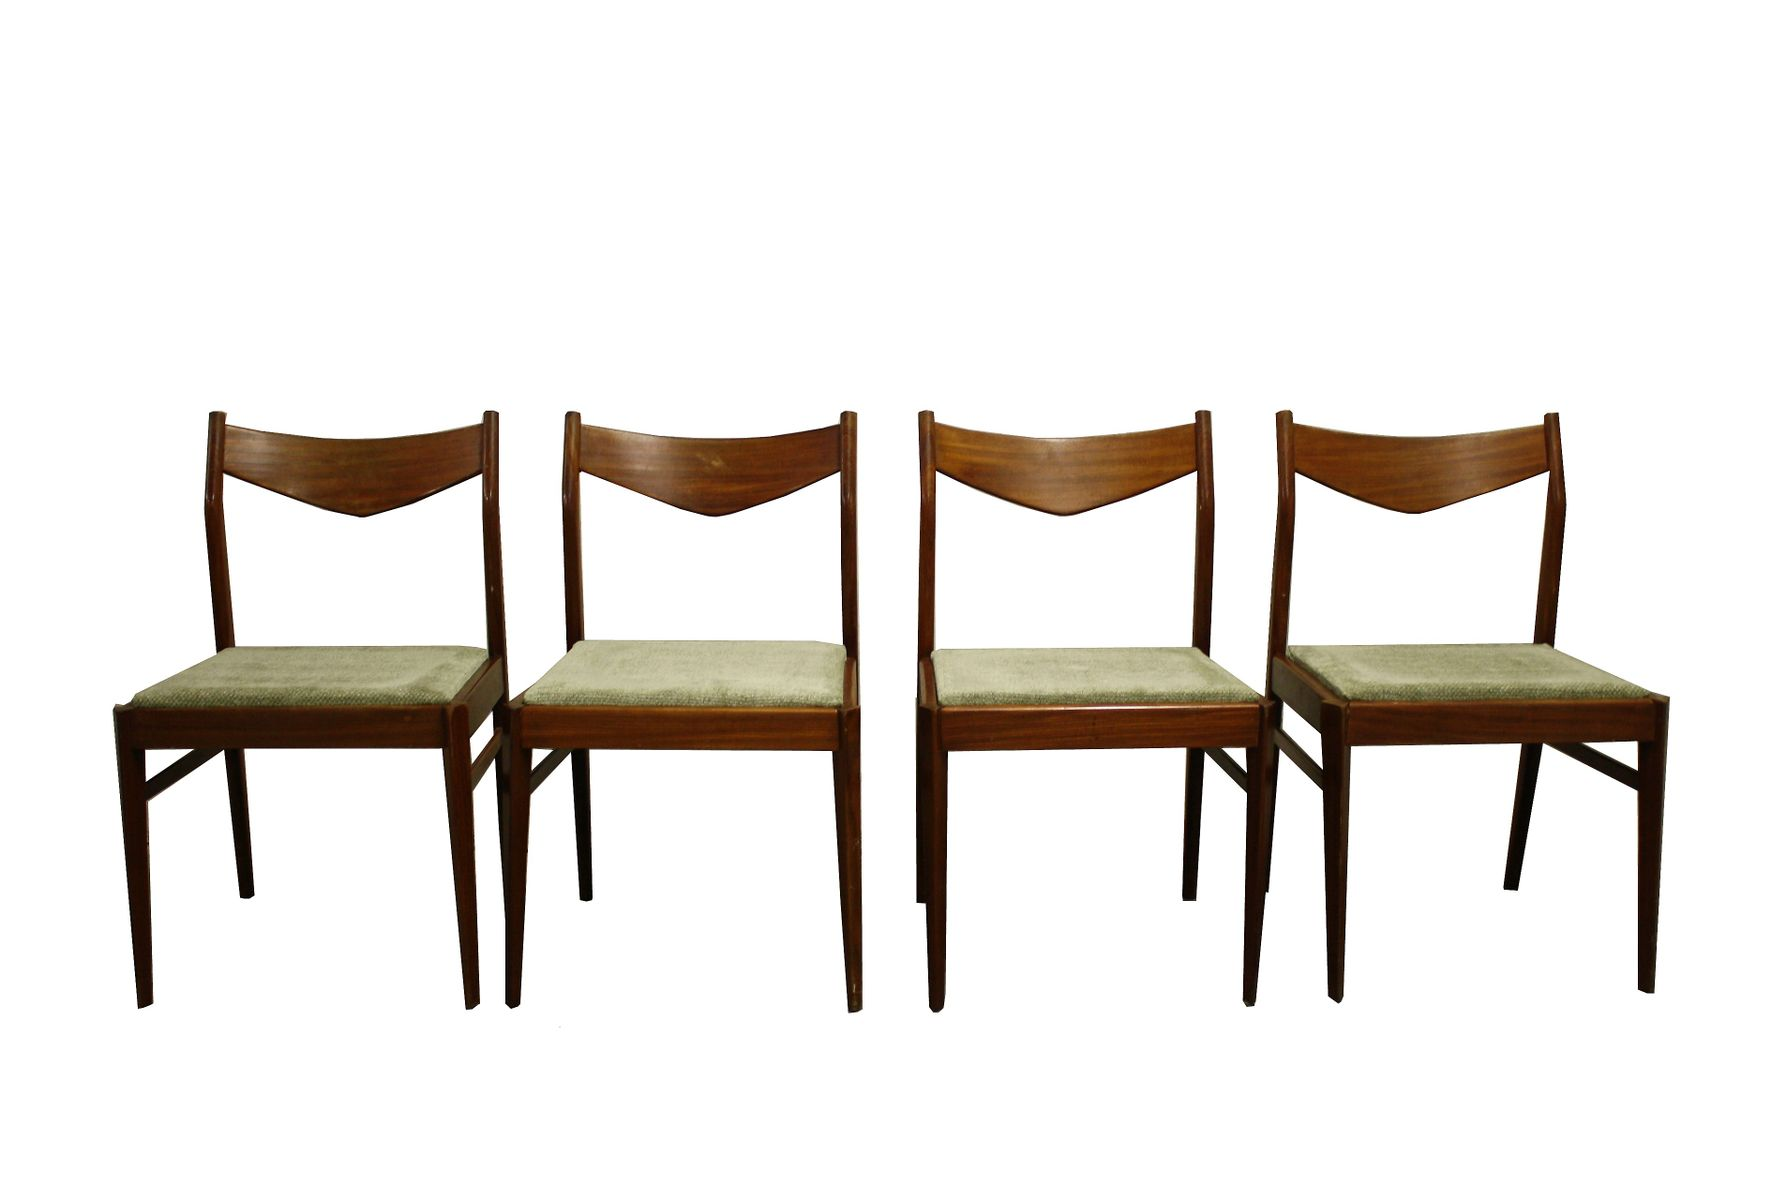 Vintage Scandinavian Dining Chairs 1960s Set of 4  sc 1 st  Pamono & Vintage Scandinavian Dining Chairs 1960s Set of 4 for sale at Pamono